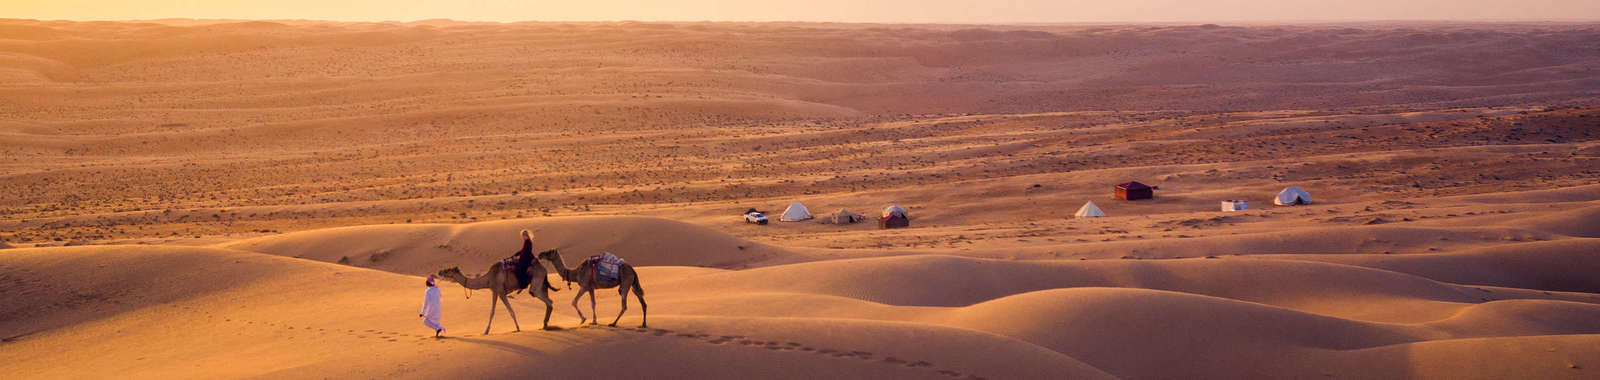 Canvas-Club-Aerial-View-Camp-Camels-Wahiba-Sands-Desert-Oman